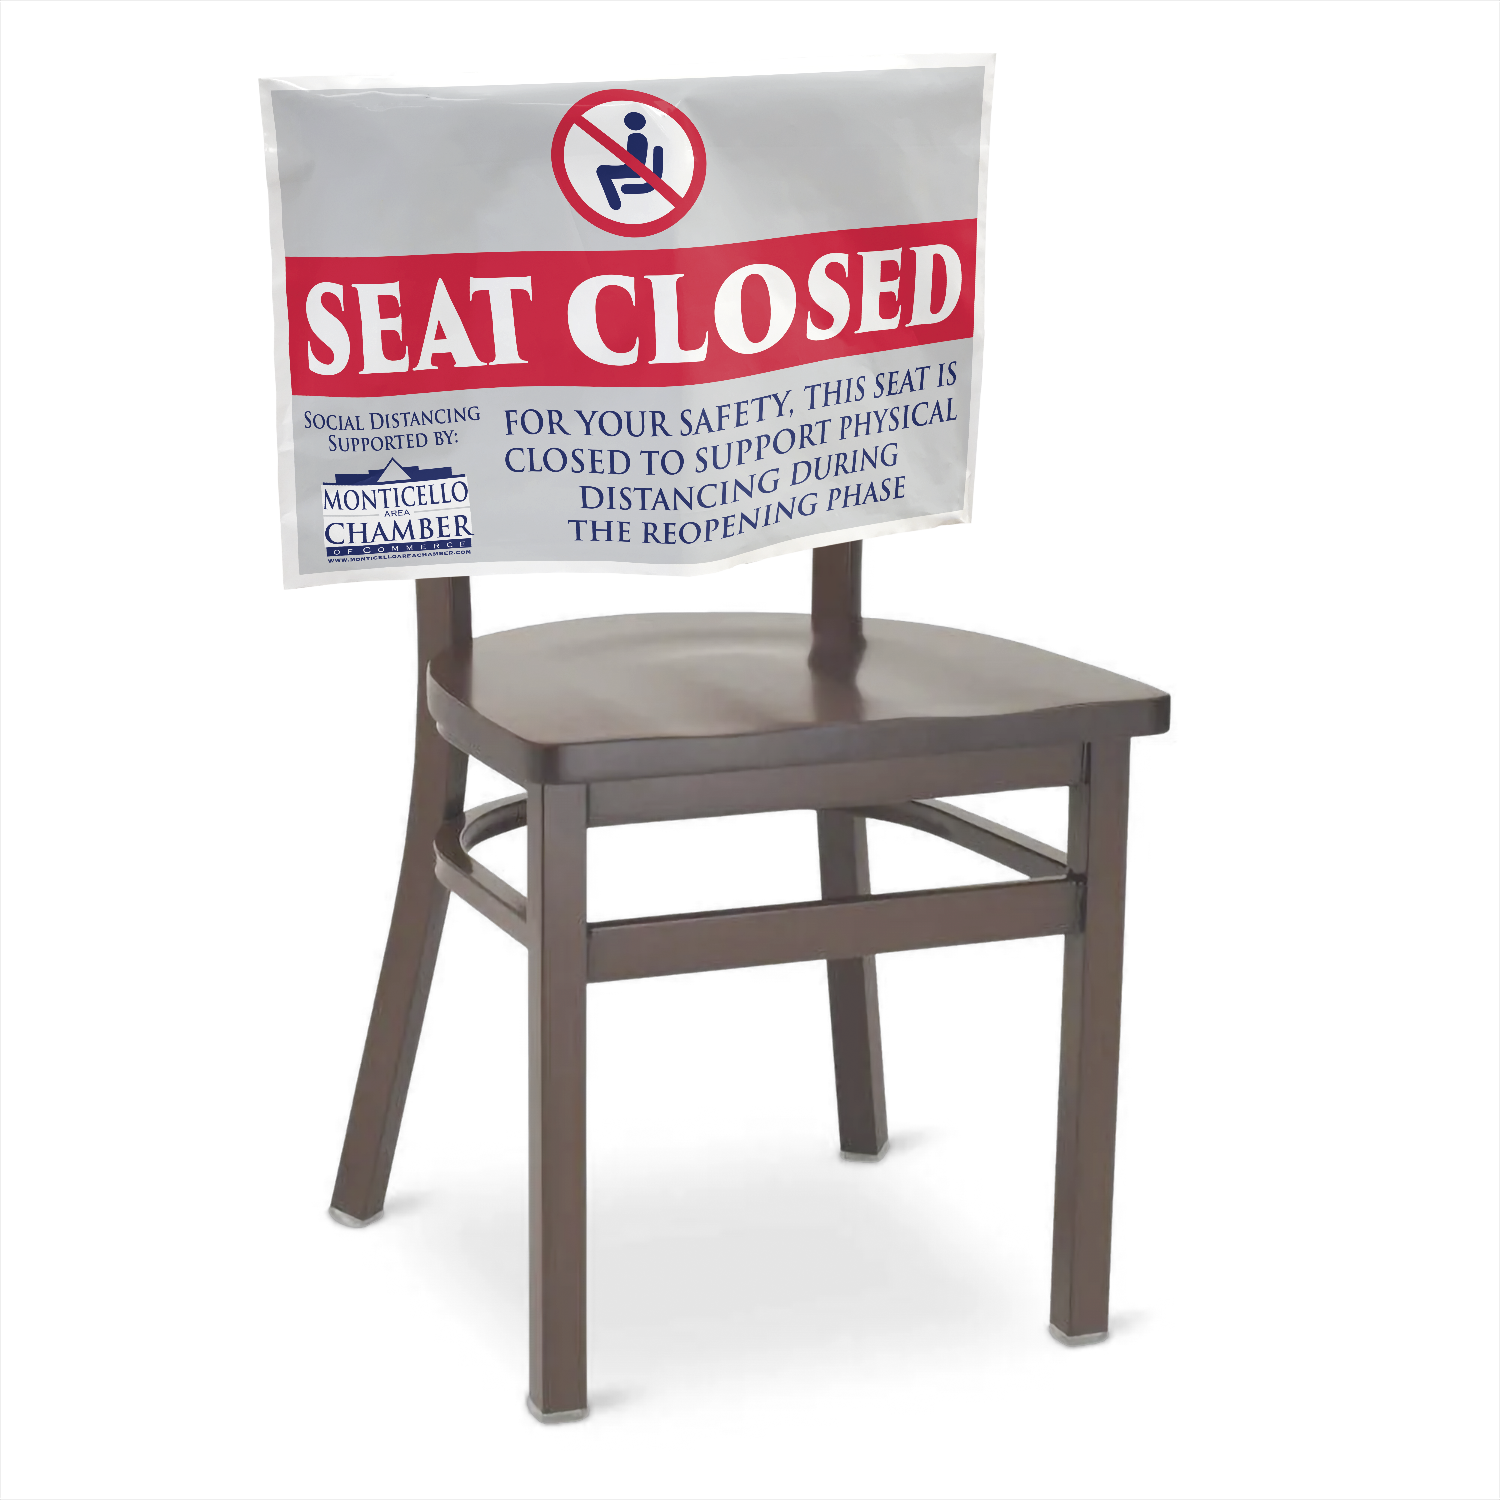 https://www.sswprinting.com/images/products_gallery_images/400201_Chair-Font_Seat-Closed_hi-res28.png